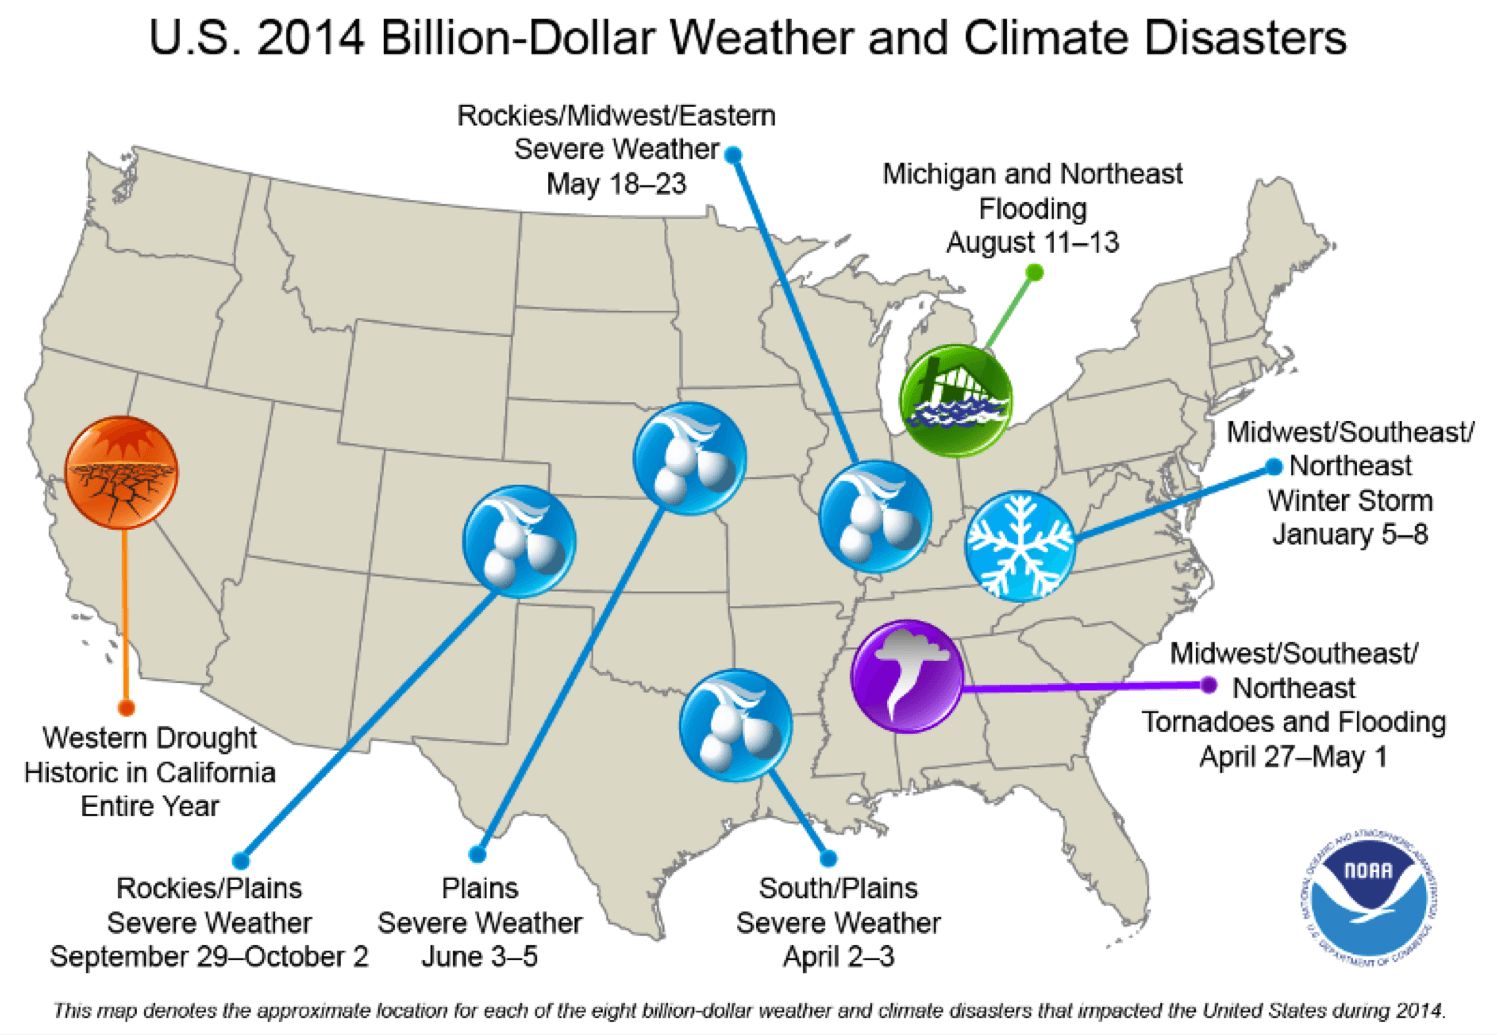 Map Summarizing The Billion Dollar Disasters In The United States In 2014